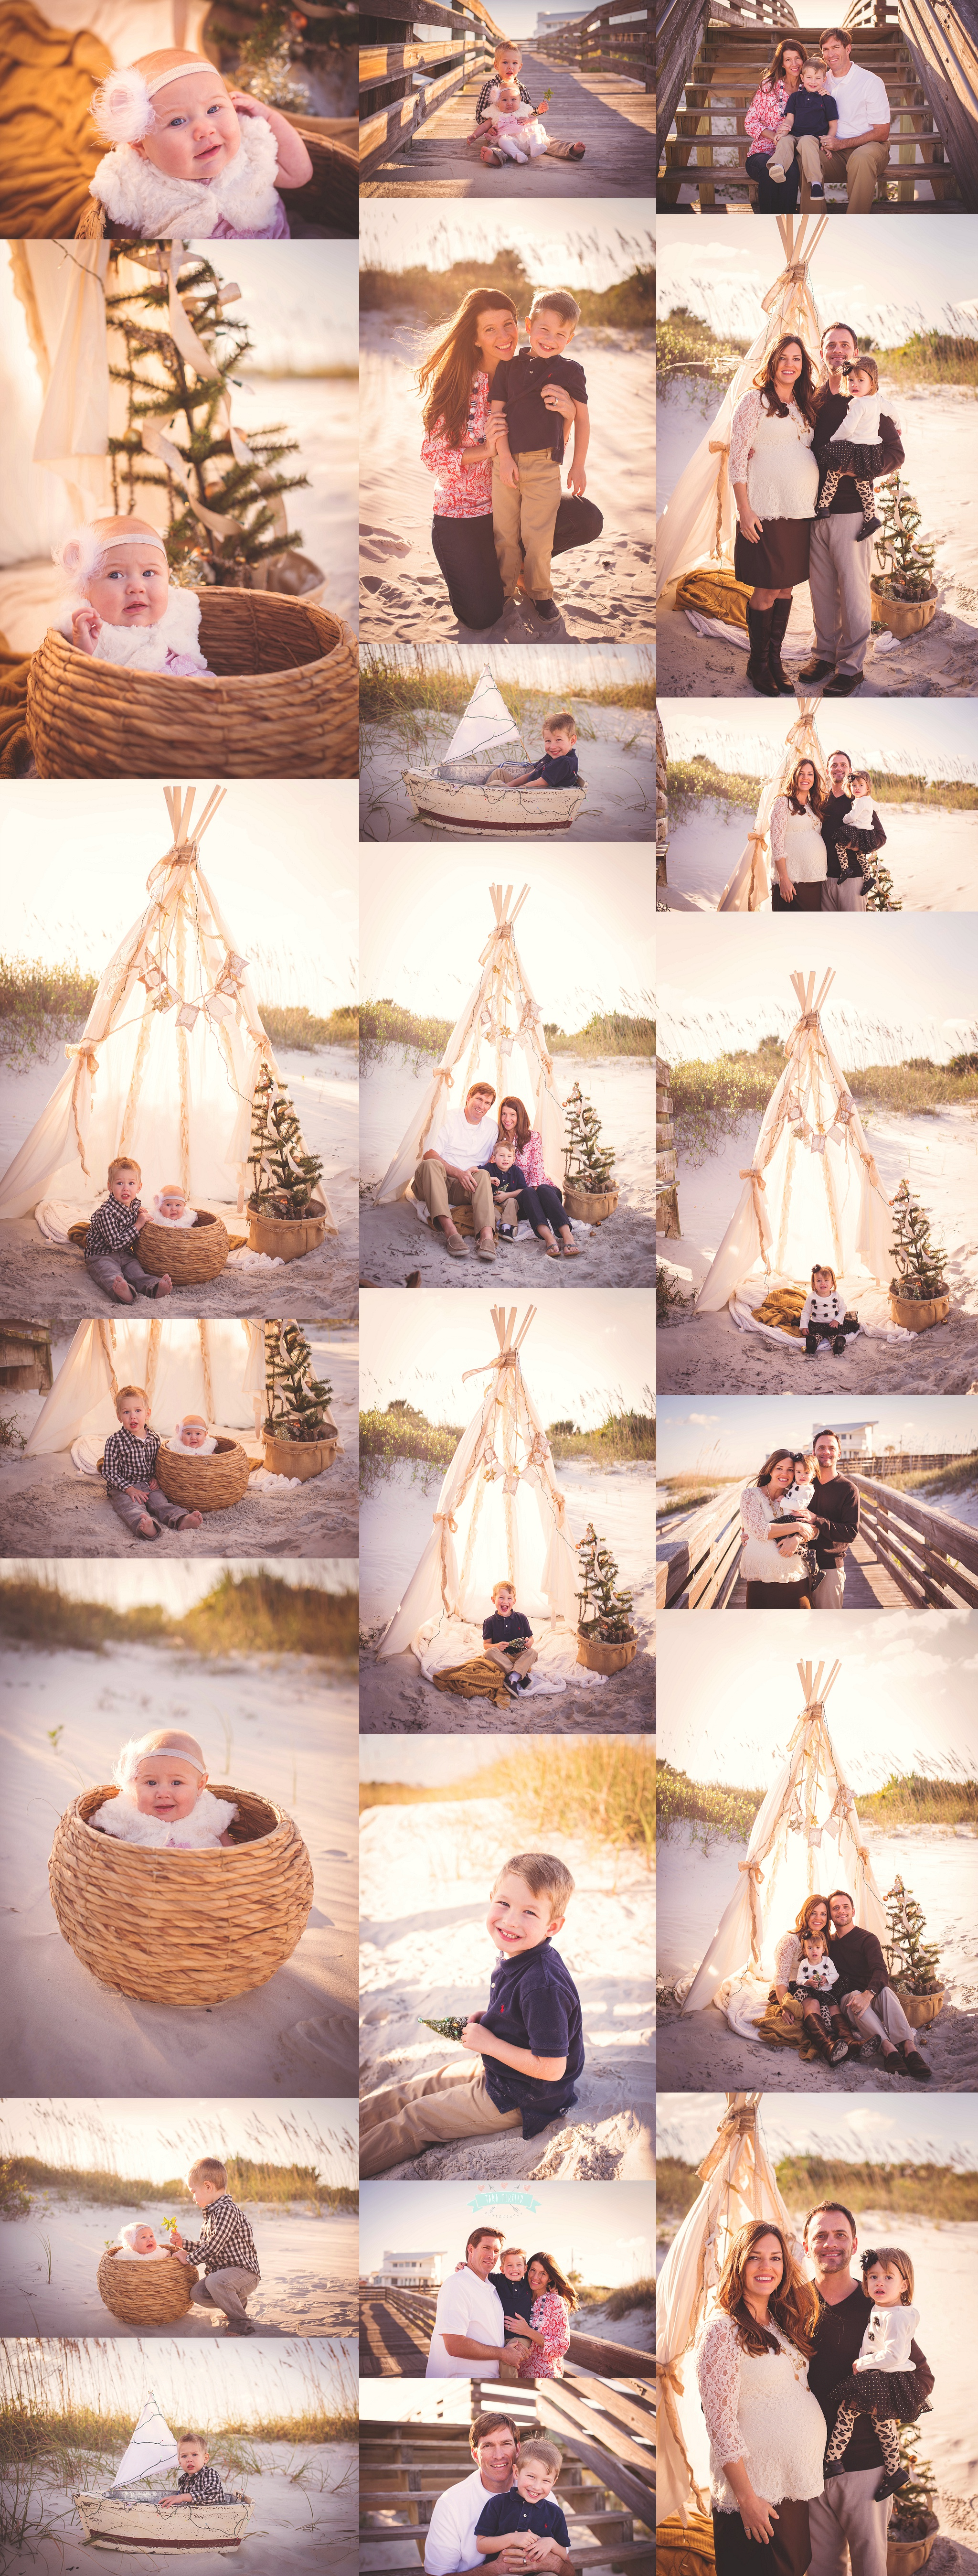 Christmas Holiday Beach Sessions  2014 Tara Merkler Photography Winter Park, Florida Family Photography Central Florida_0039.jpg